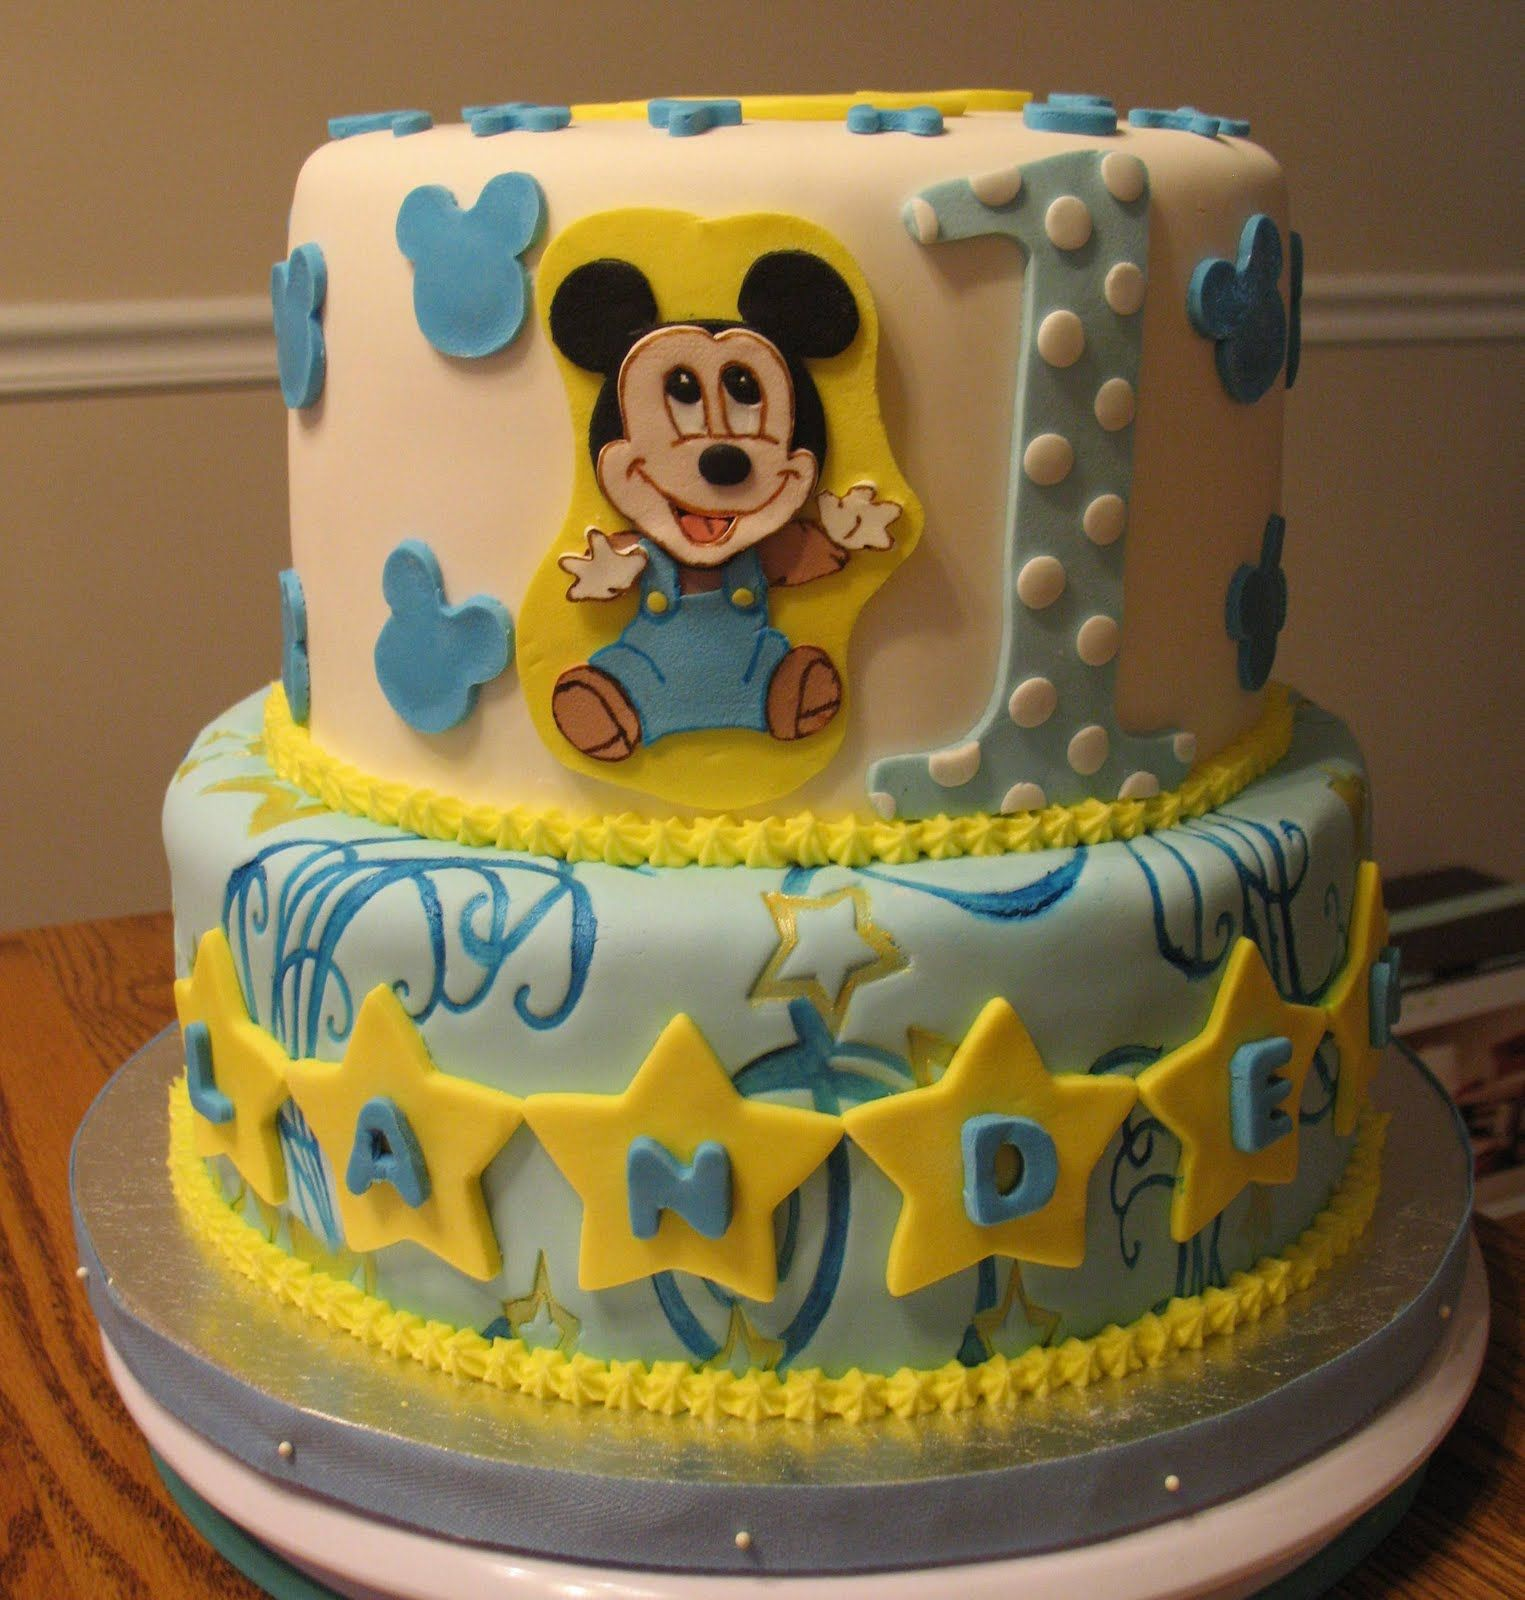 Baby Mickey Mouse Edible Cake Decorations Baby Mickey Mouse 1st Birthday Cake By Cake By Nesrn Tong Via